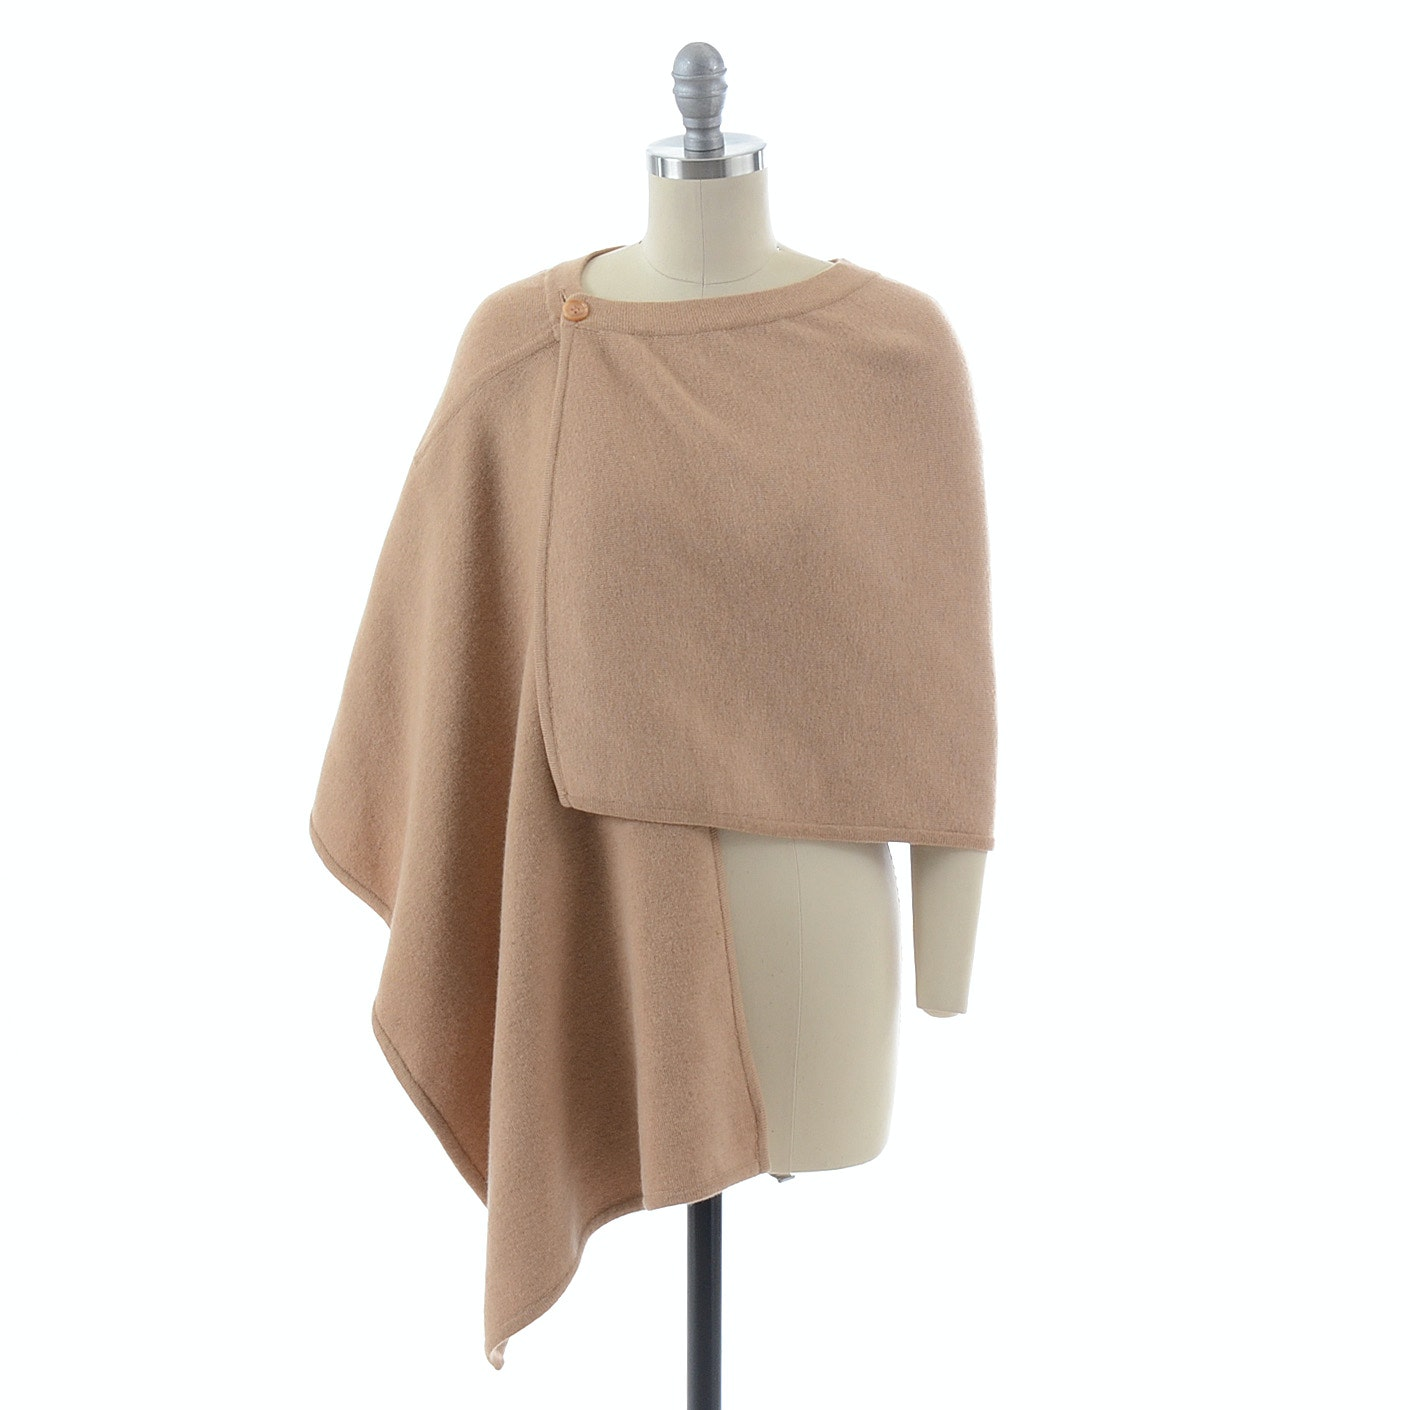 Donna Karan of New York Cashmere Blend Wool Poncho Wrap in Camel